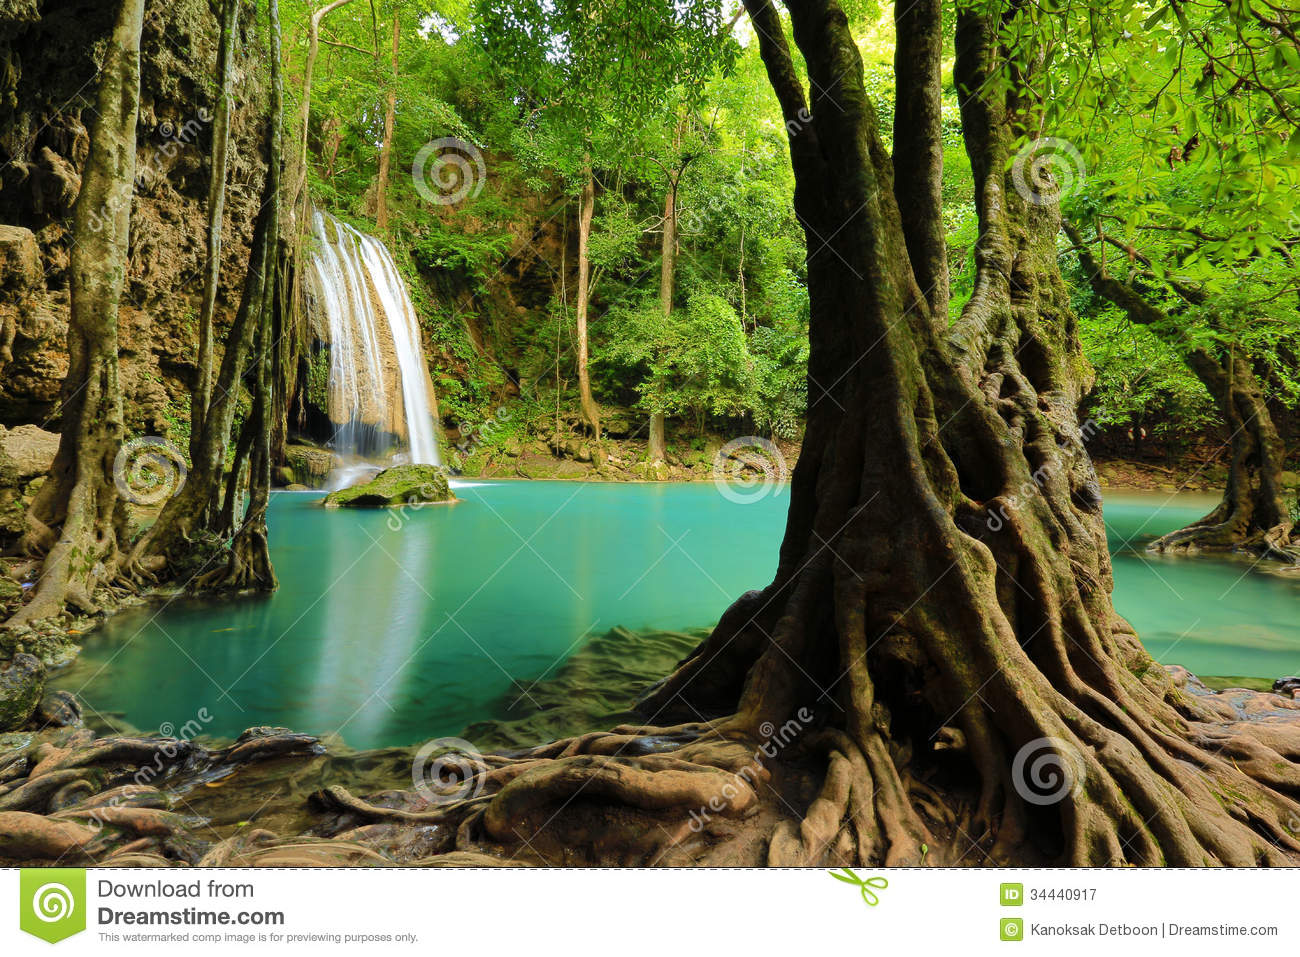 Waterfall Beautiful Scenery In The Tropical Forest Stock Image